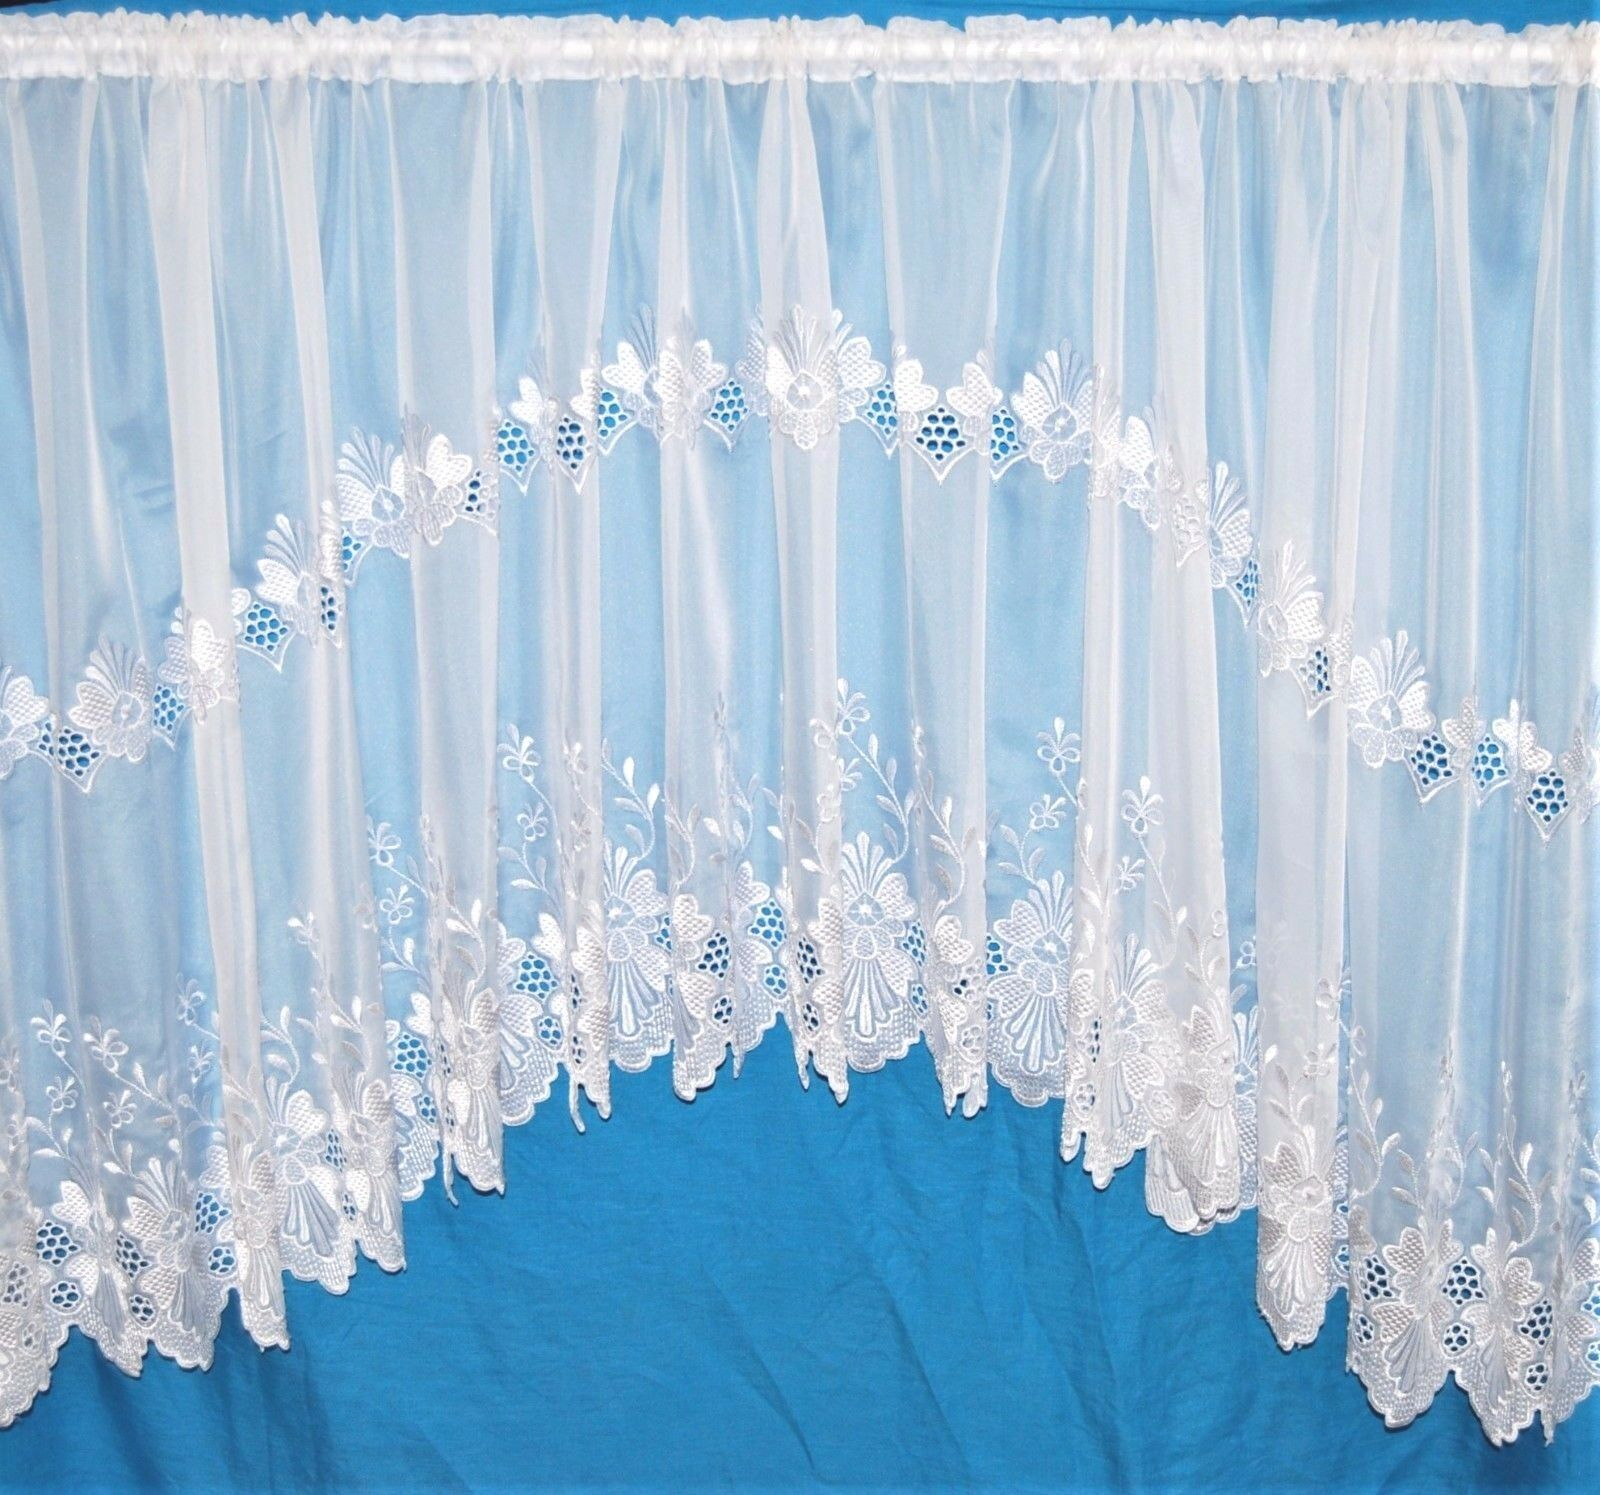 KIRSTY VOILE JARDINIERE JARDINIERE JARDINIERE PLAIN WITH EMBROIDErot BASE DESIGN  Weiß NET CURTAIN c14a25